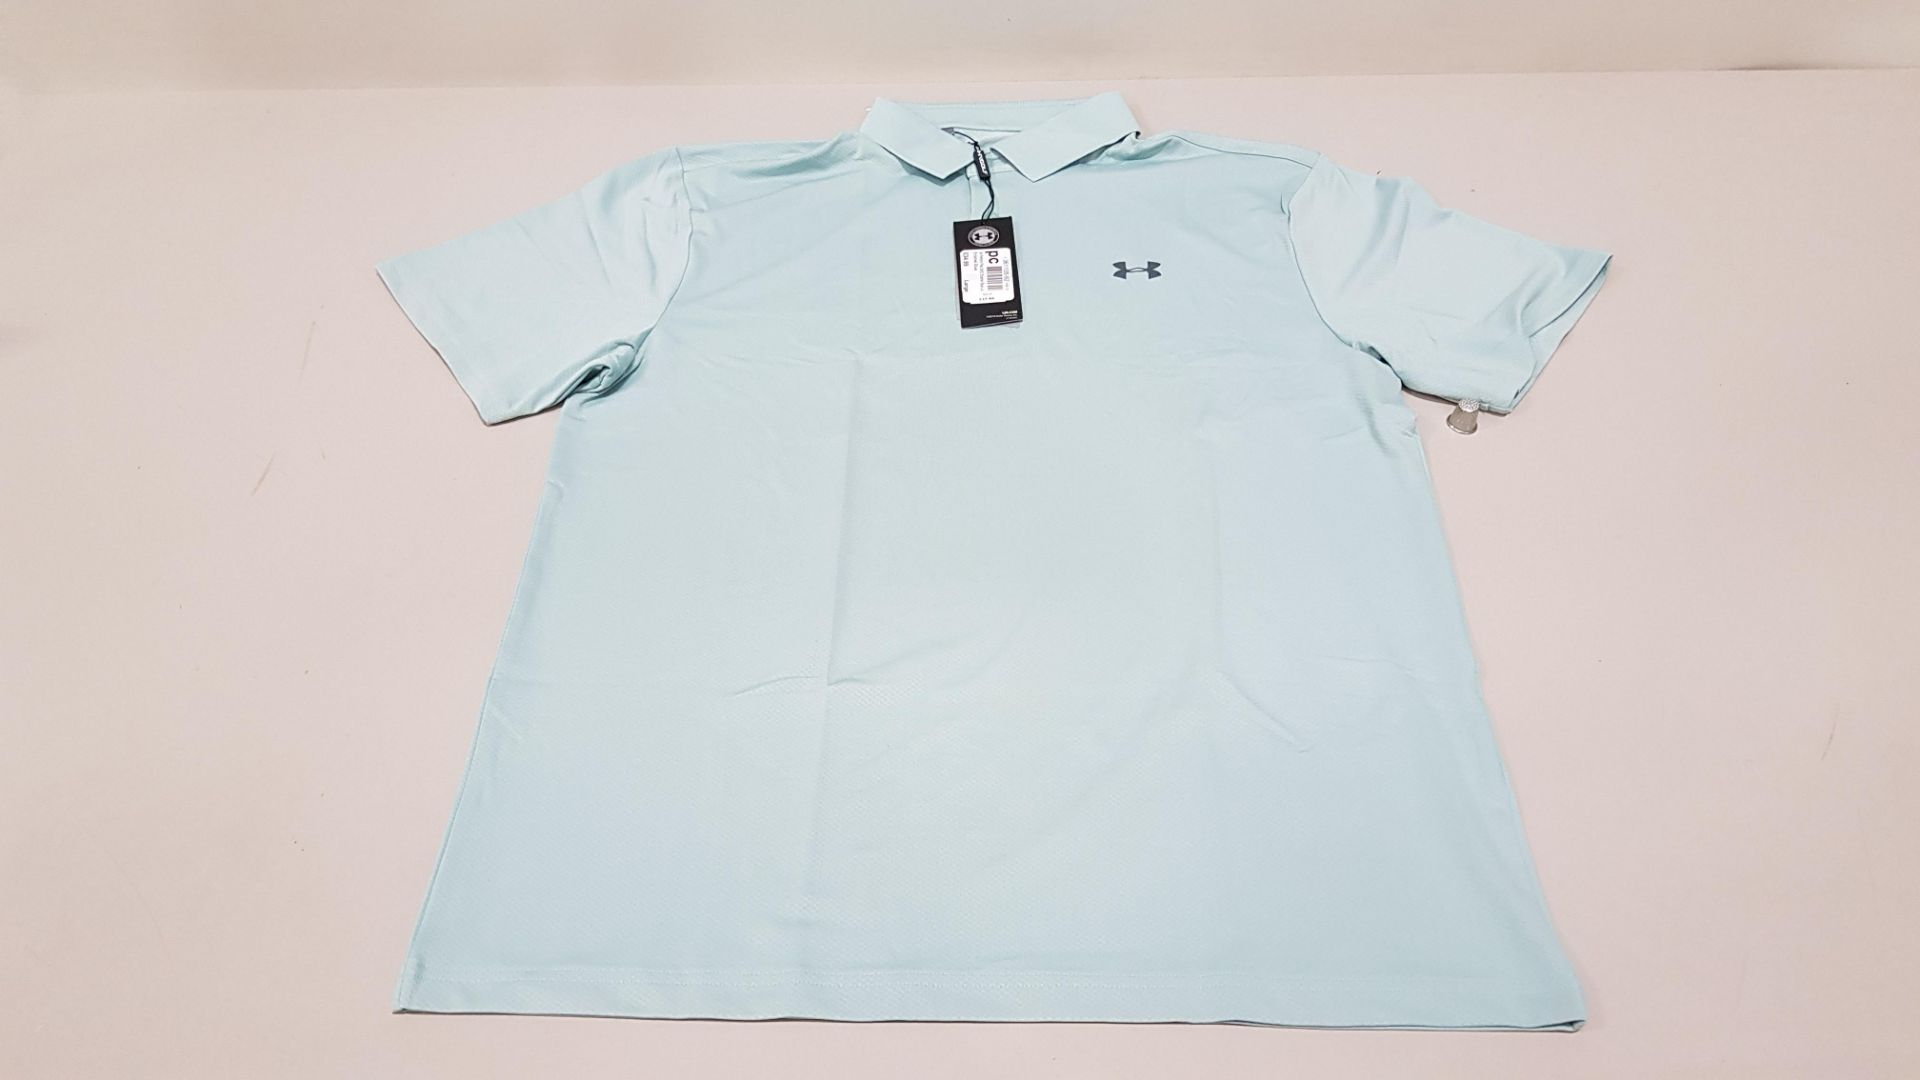 15 X BRAND NEW UNDER ARMOUR BAGGED PERFORMANCE POLO IN ENAMEL BLUE SIZE LARGE RRP £34.99 (TOTAL